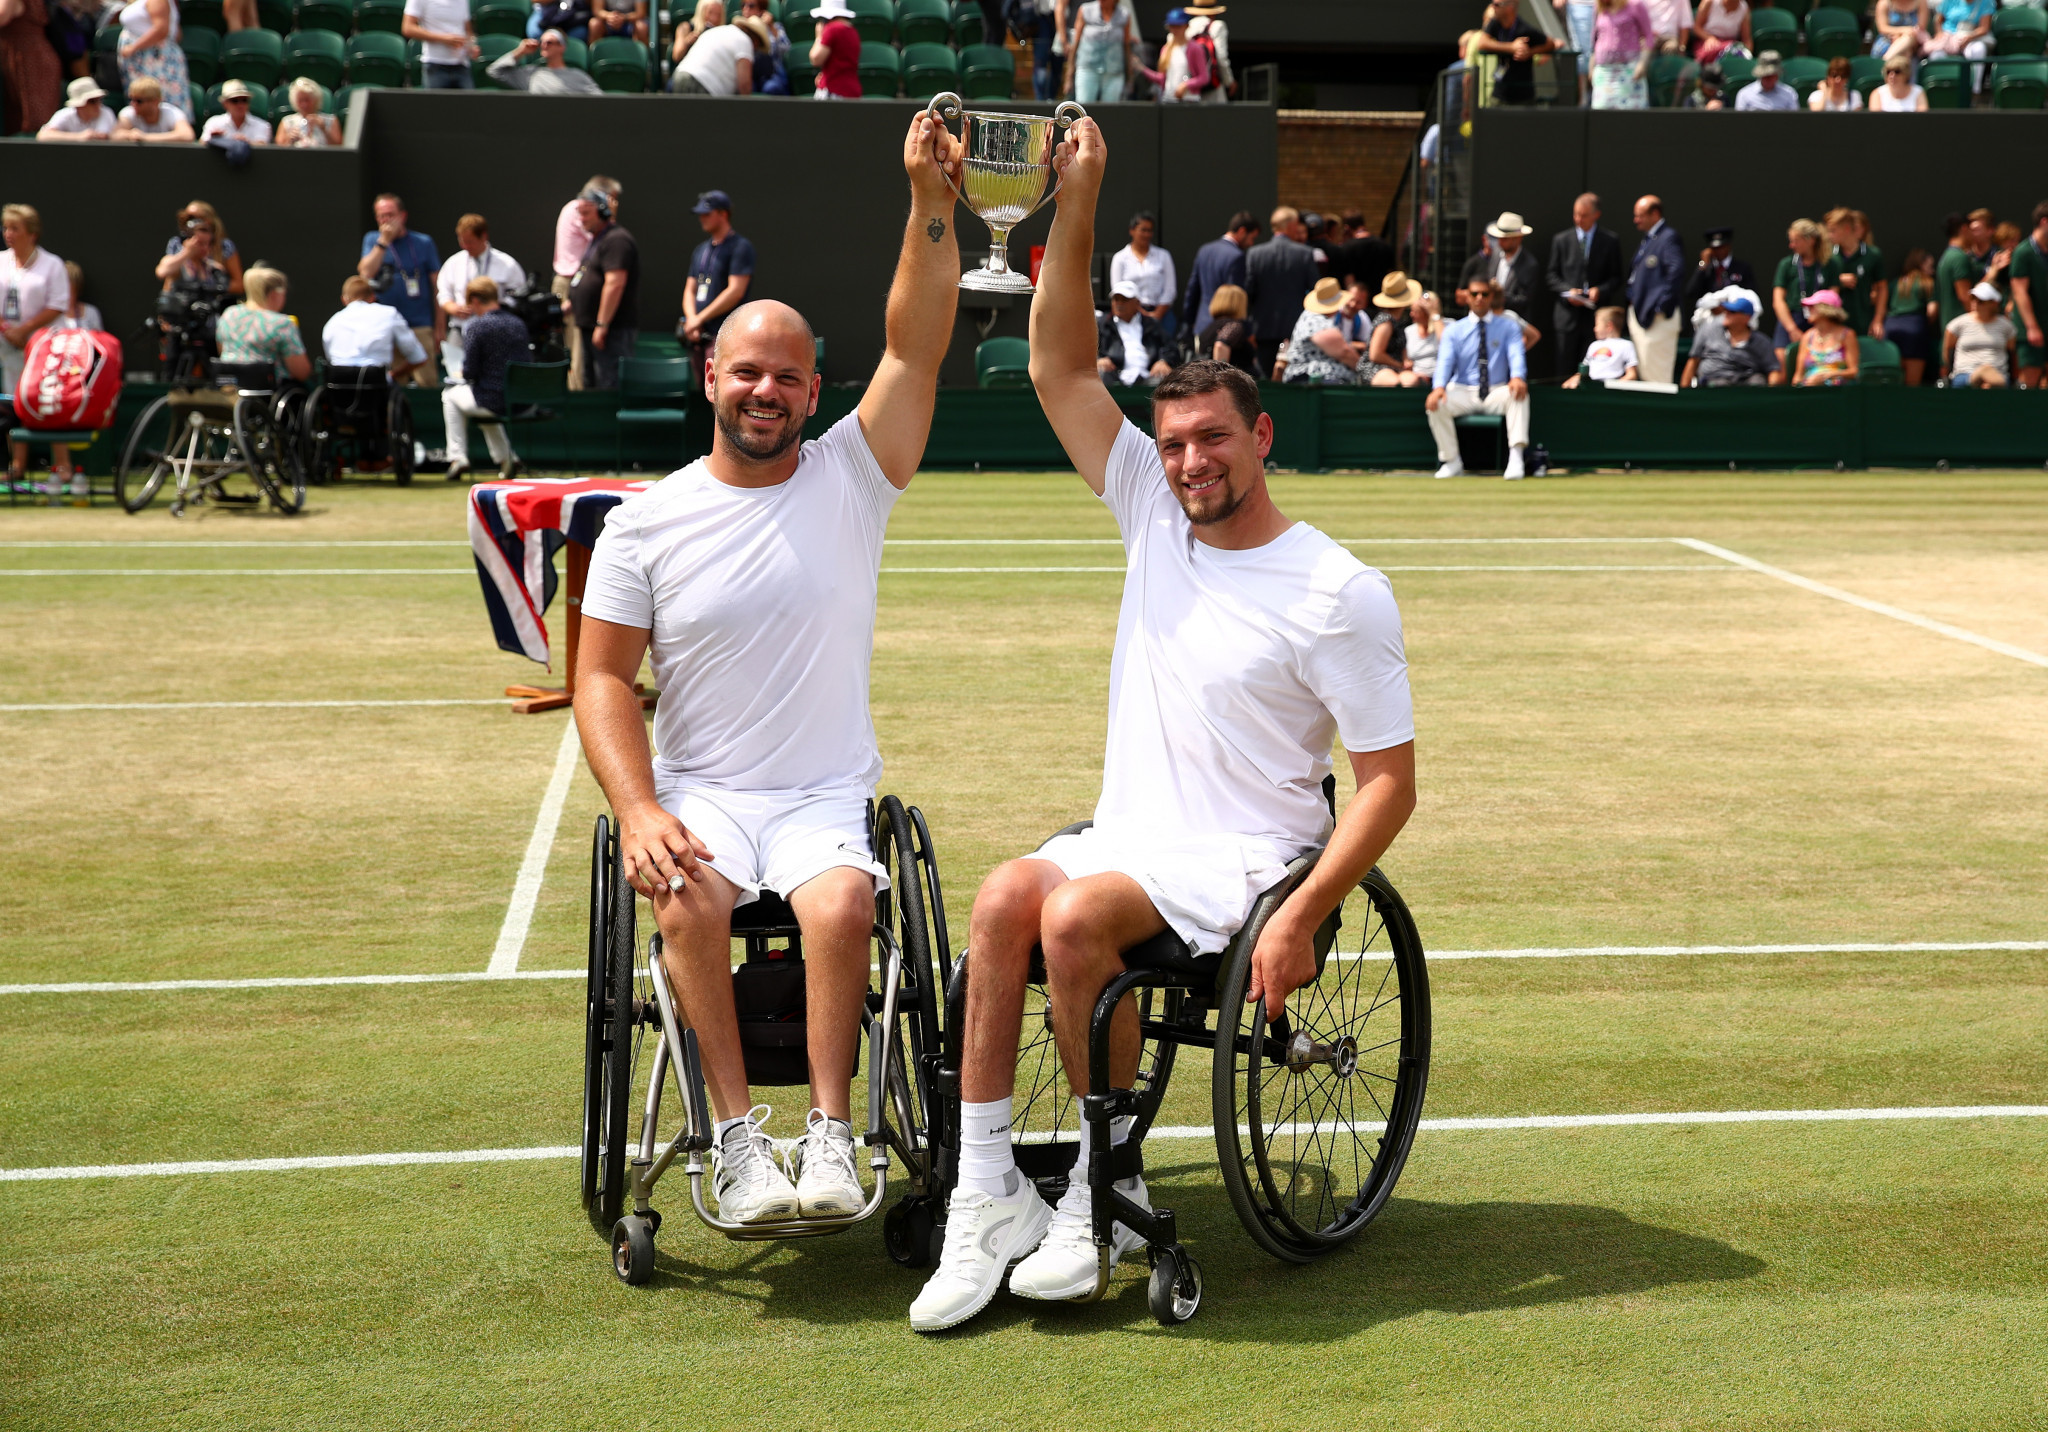 Joachim Gerard of Belgium and Sweden's Stefan Olsson celebrate victory in the men's wheelchair tennis doubles final at Wimbledon ©Getty Images